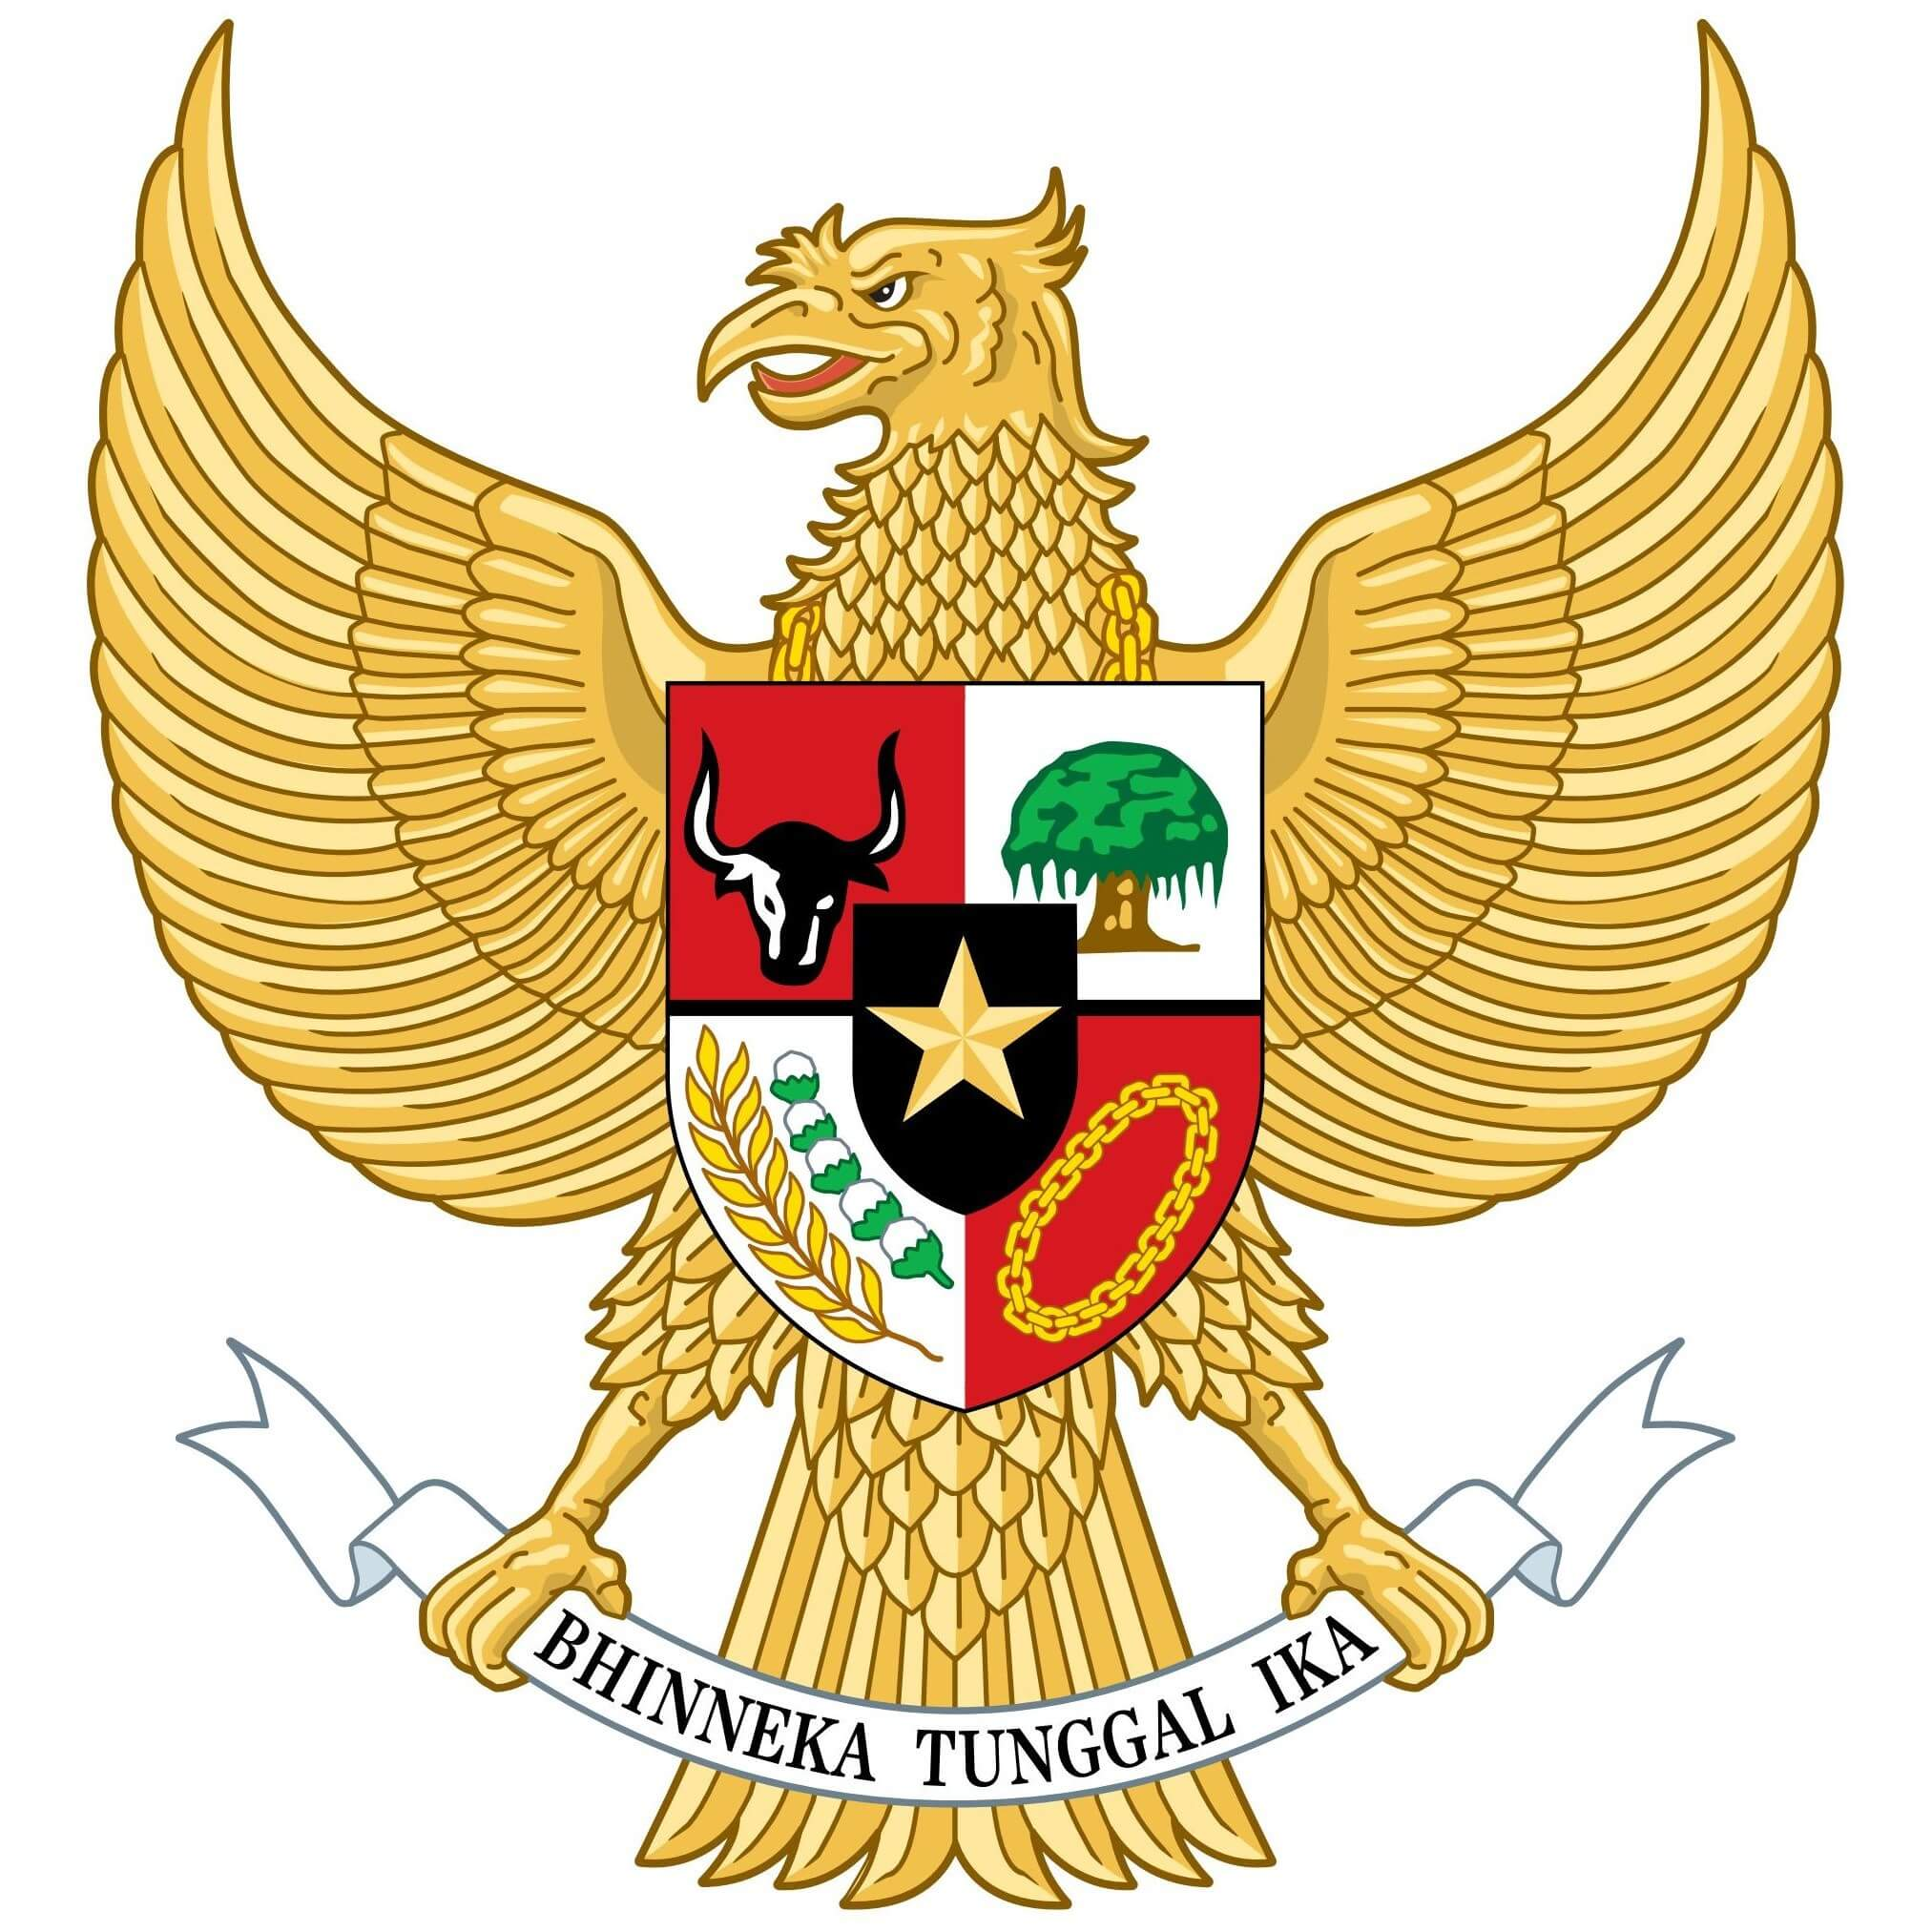 Garuda_Pancasila_National_emblem_of_Indonesia